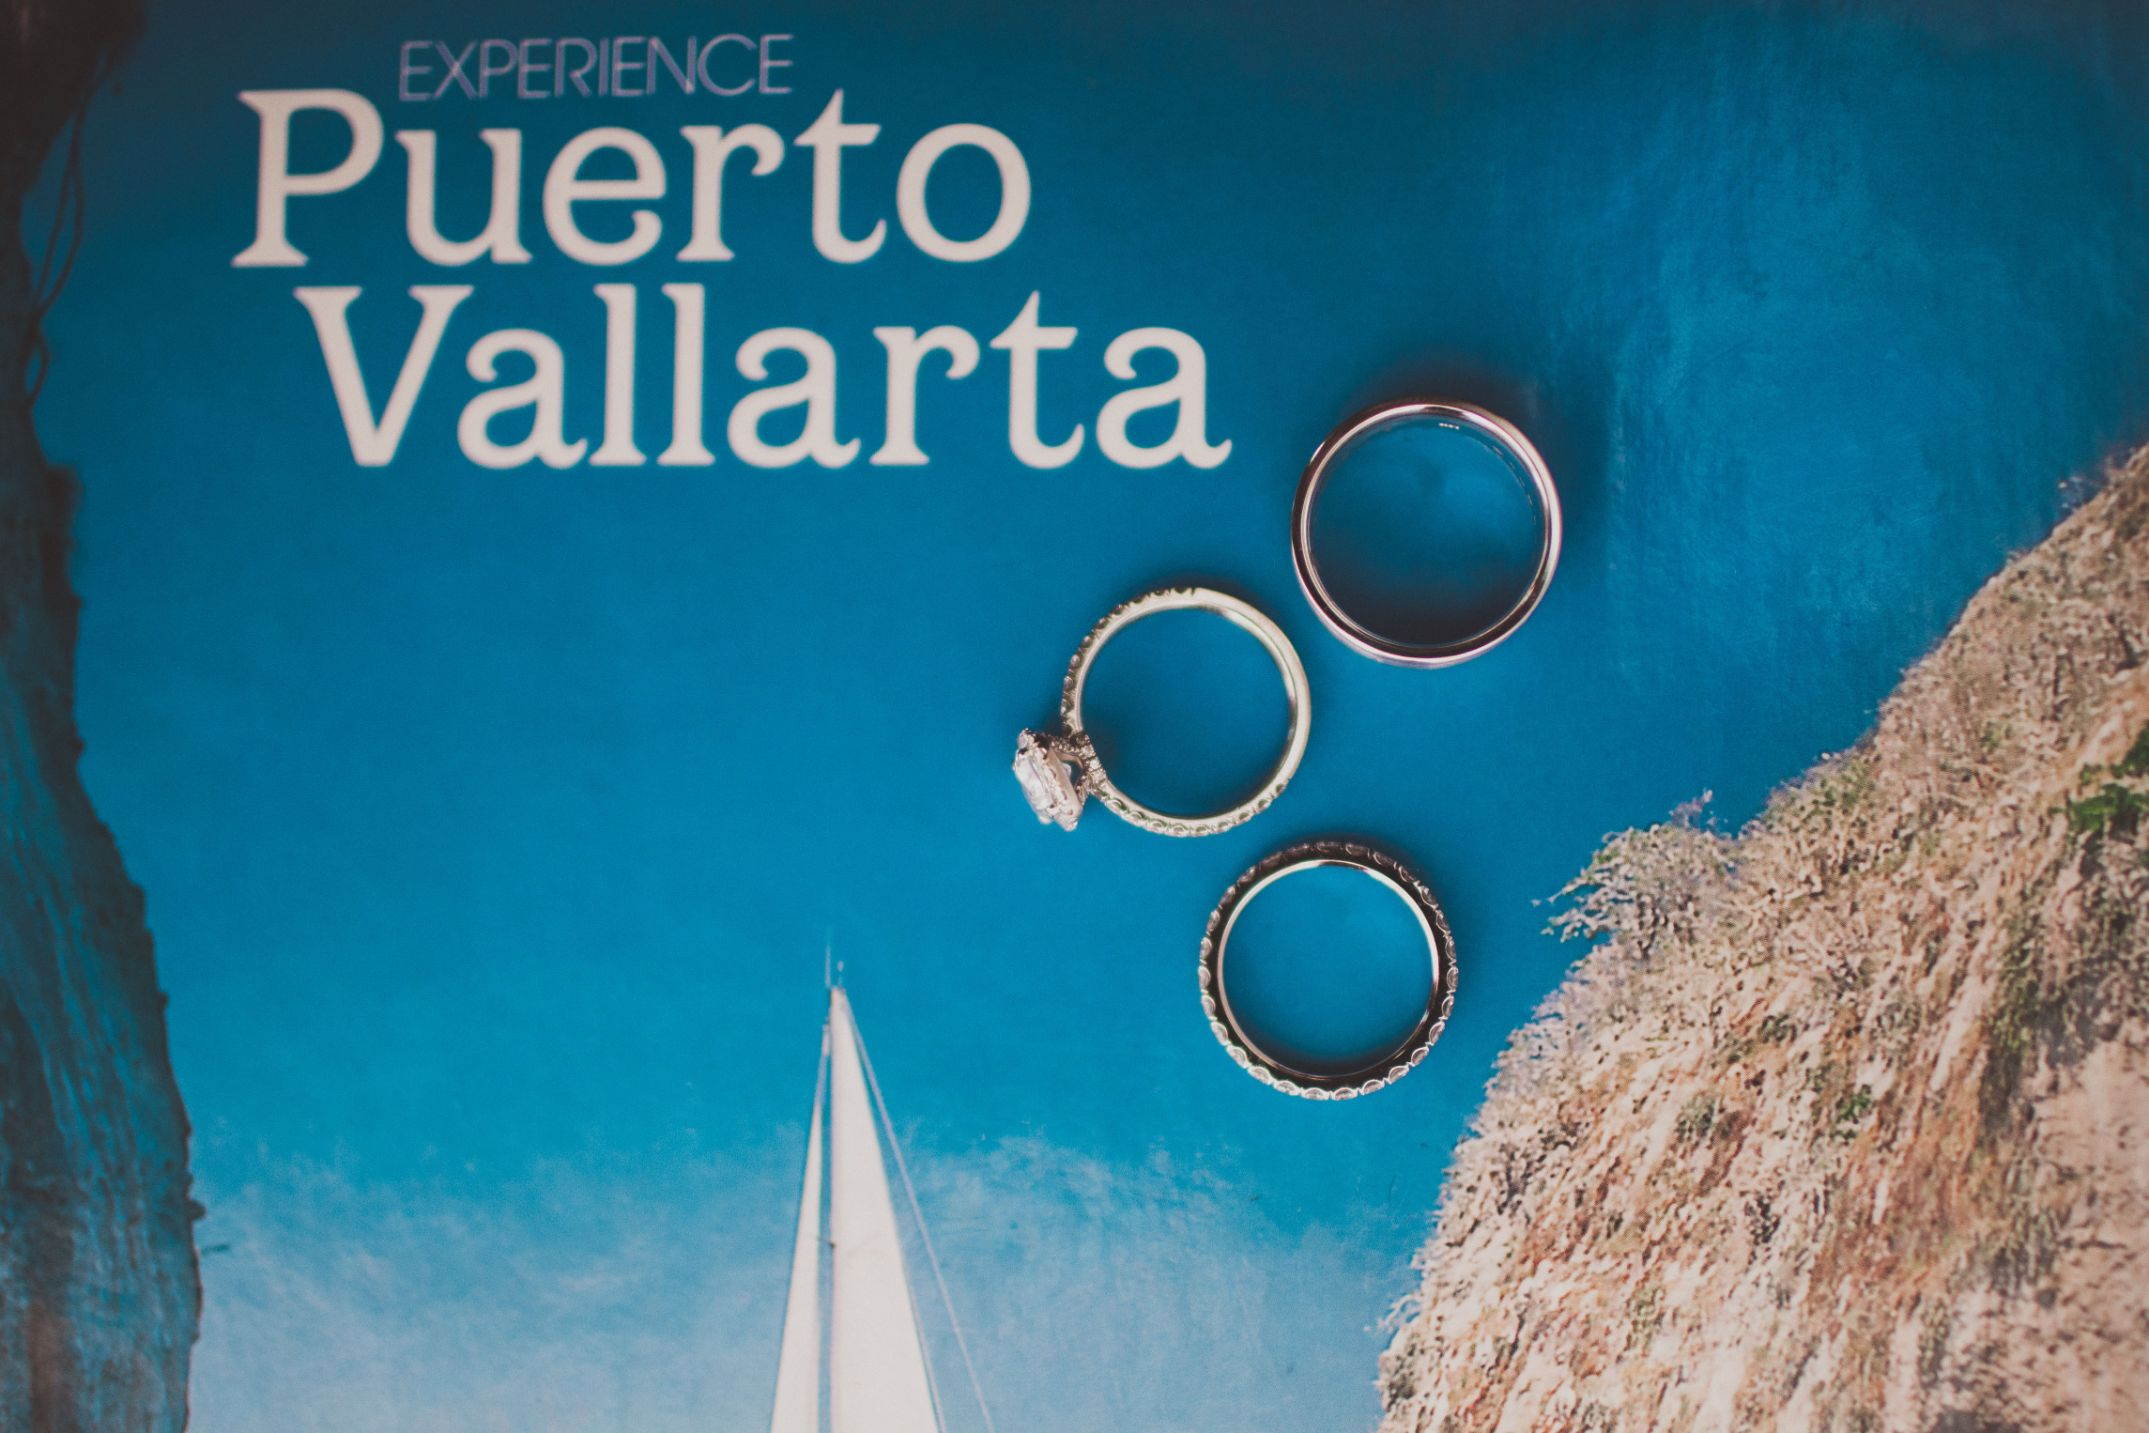 The wedding rings are set on a Puerto Vallarta tourism book for a creative photo at this destination wedding